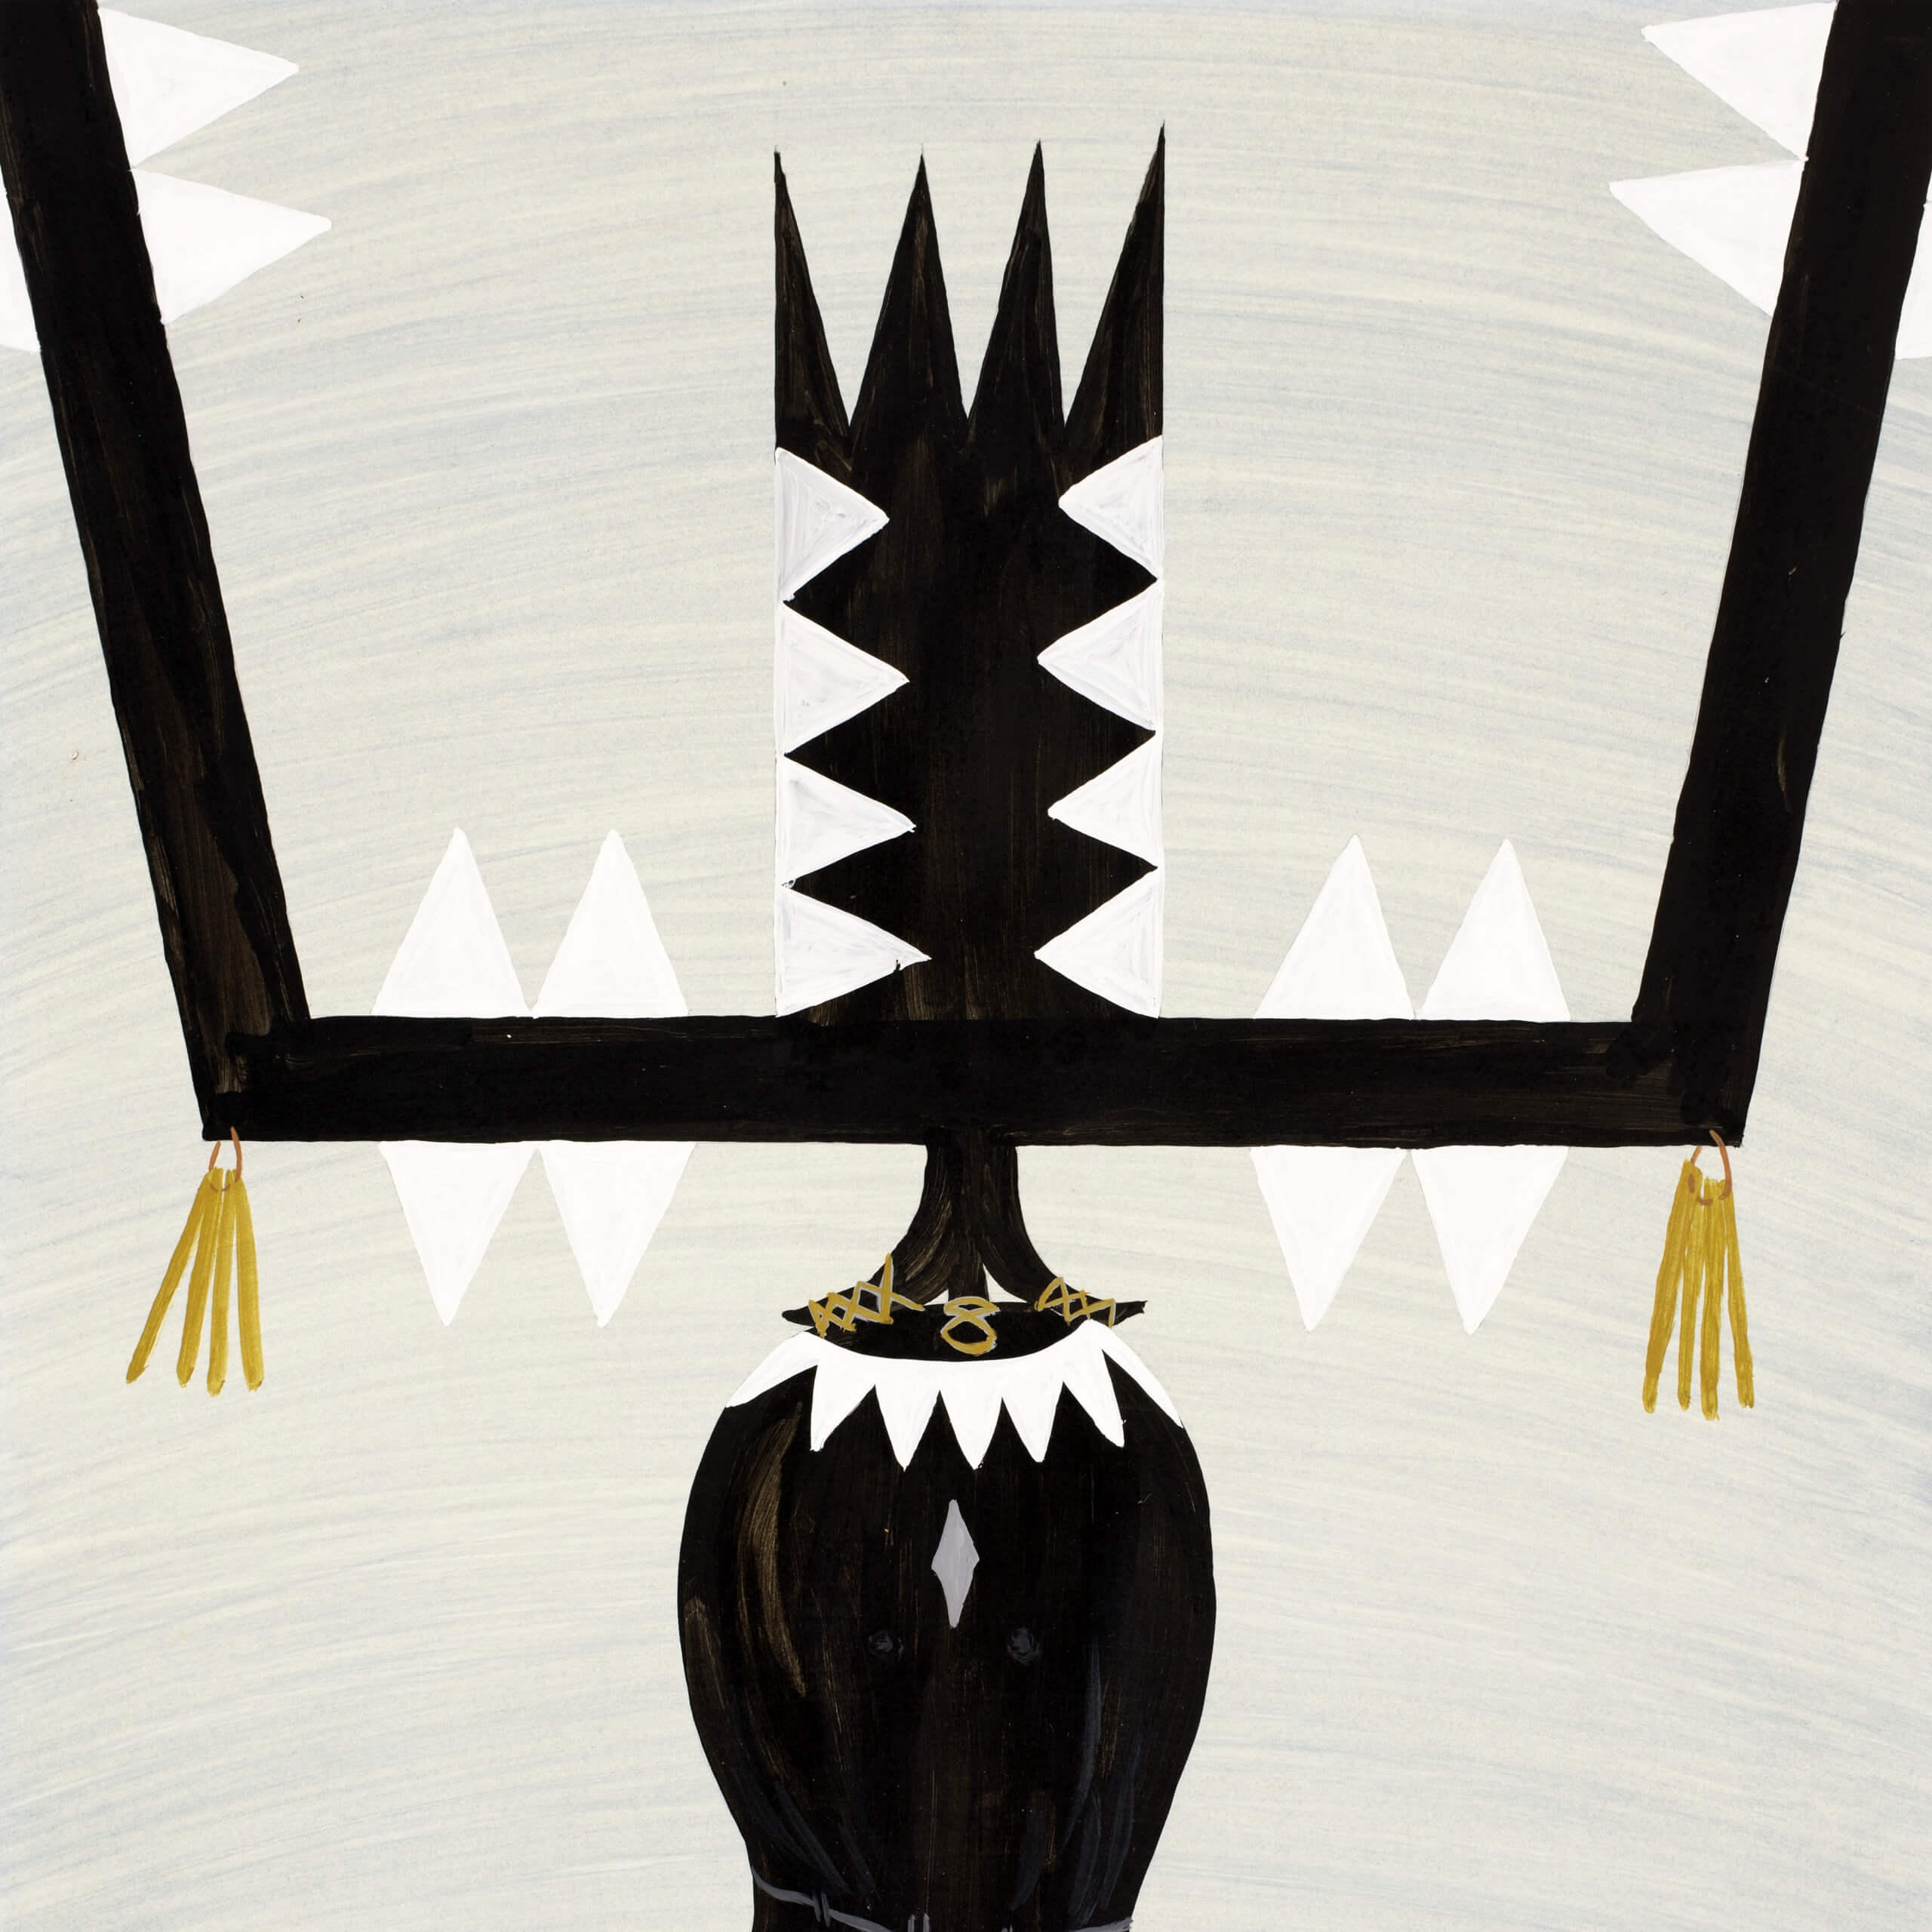 "Fred Treas, Crown Dancer, Tempera on board, 30"" x 22"", 1964, MoCNA Collection A-78, Photograph by Jason S. Ordaz"